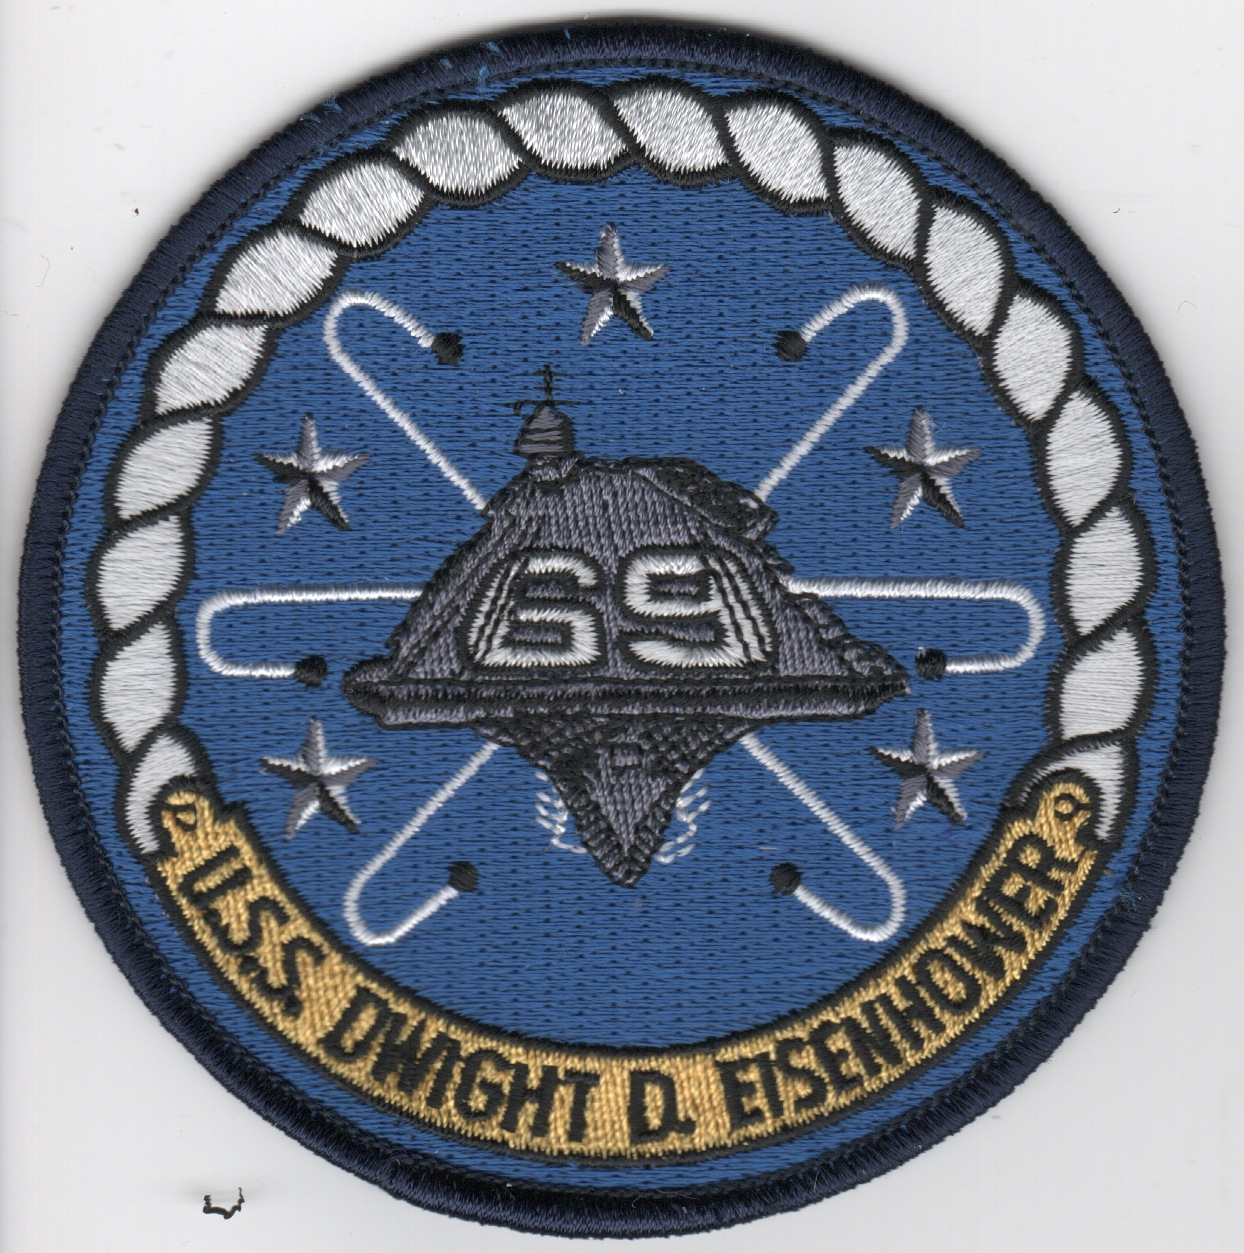 USS Dwight D. Eisenhower (CVN-69) Ship Patch (Dk Blue)